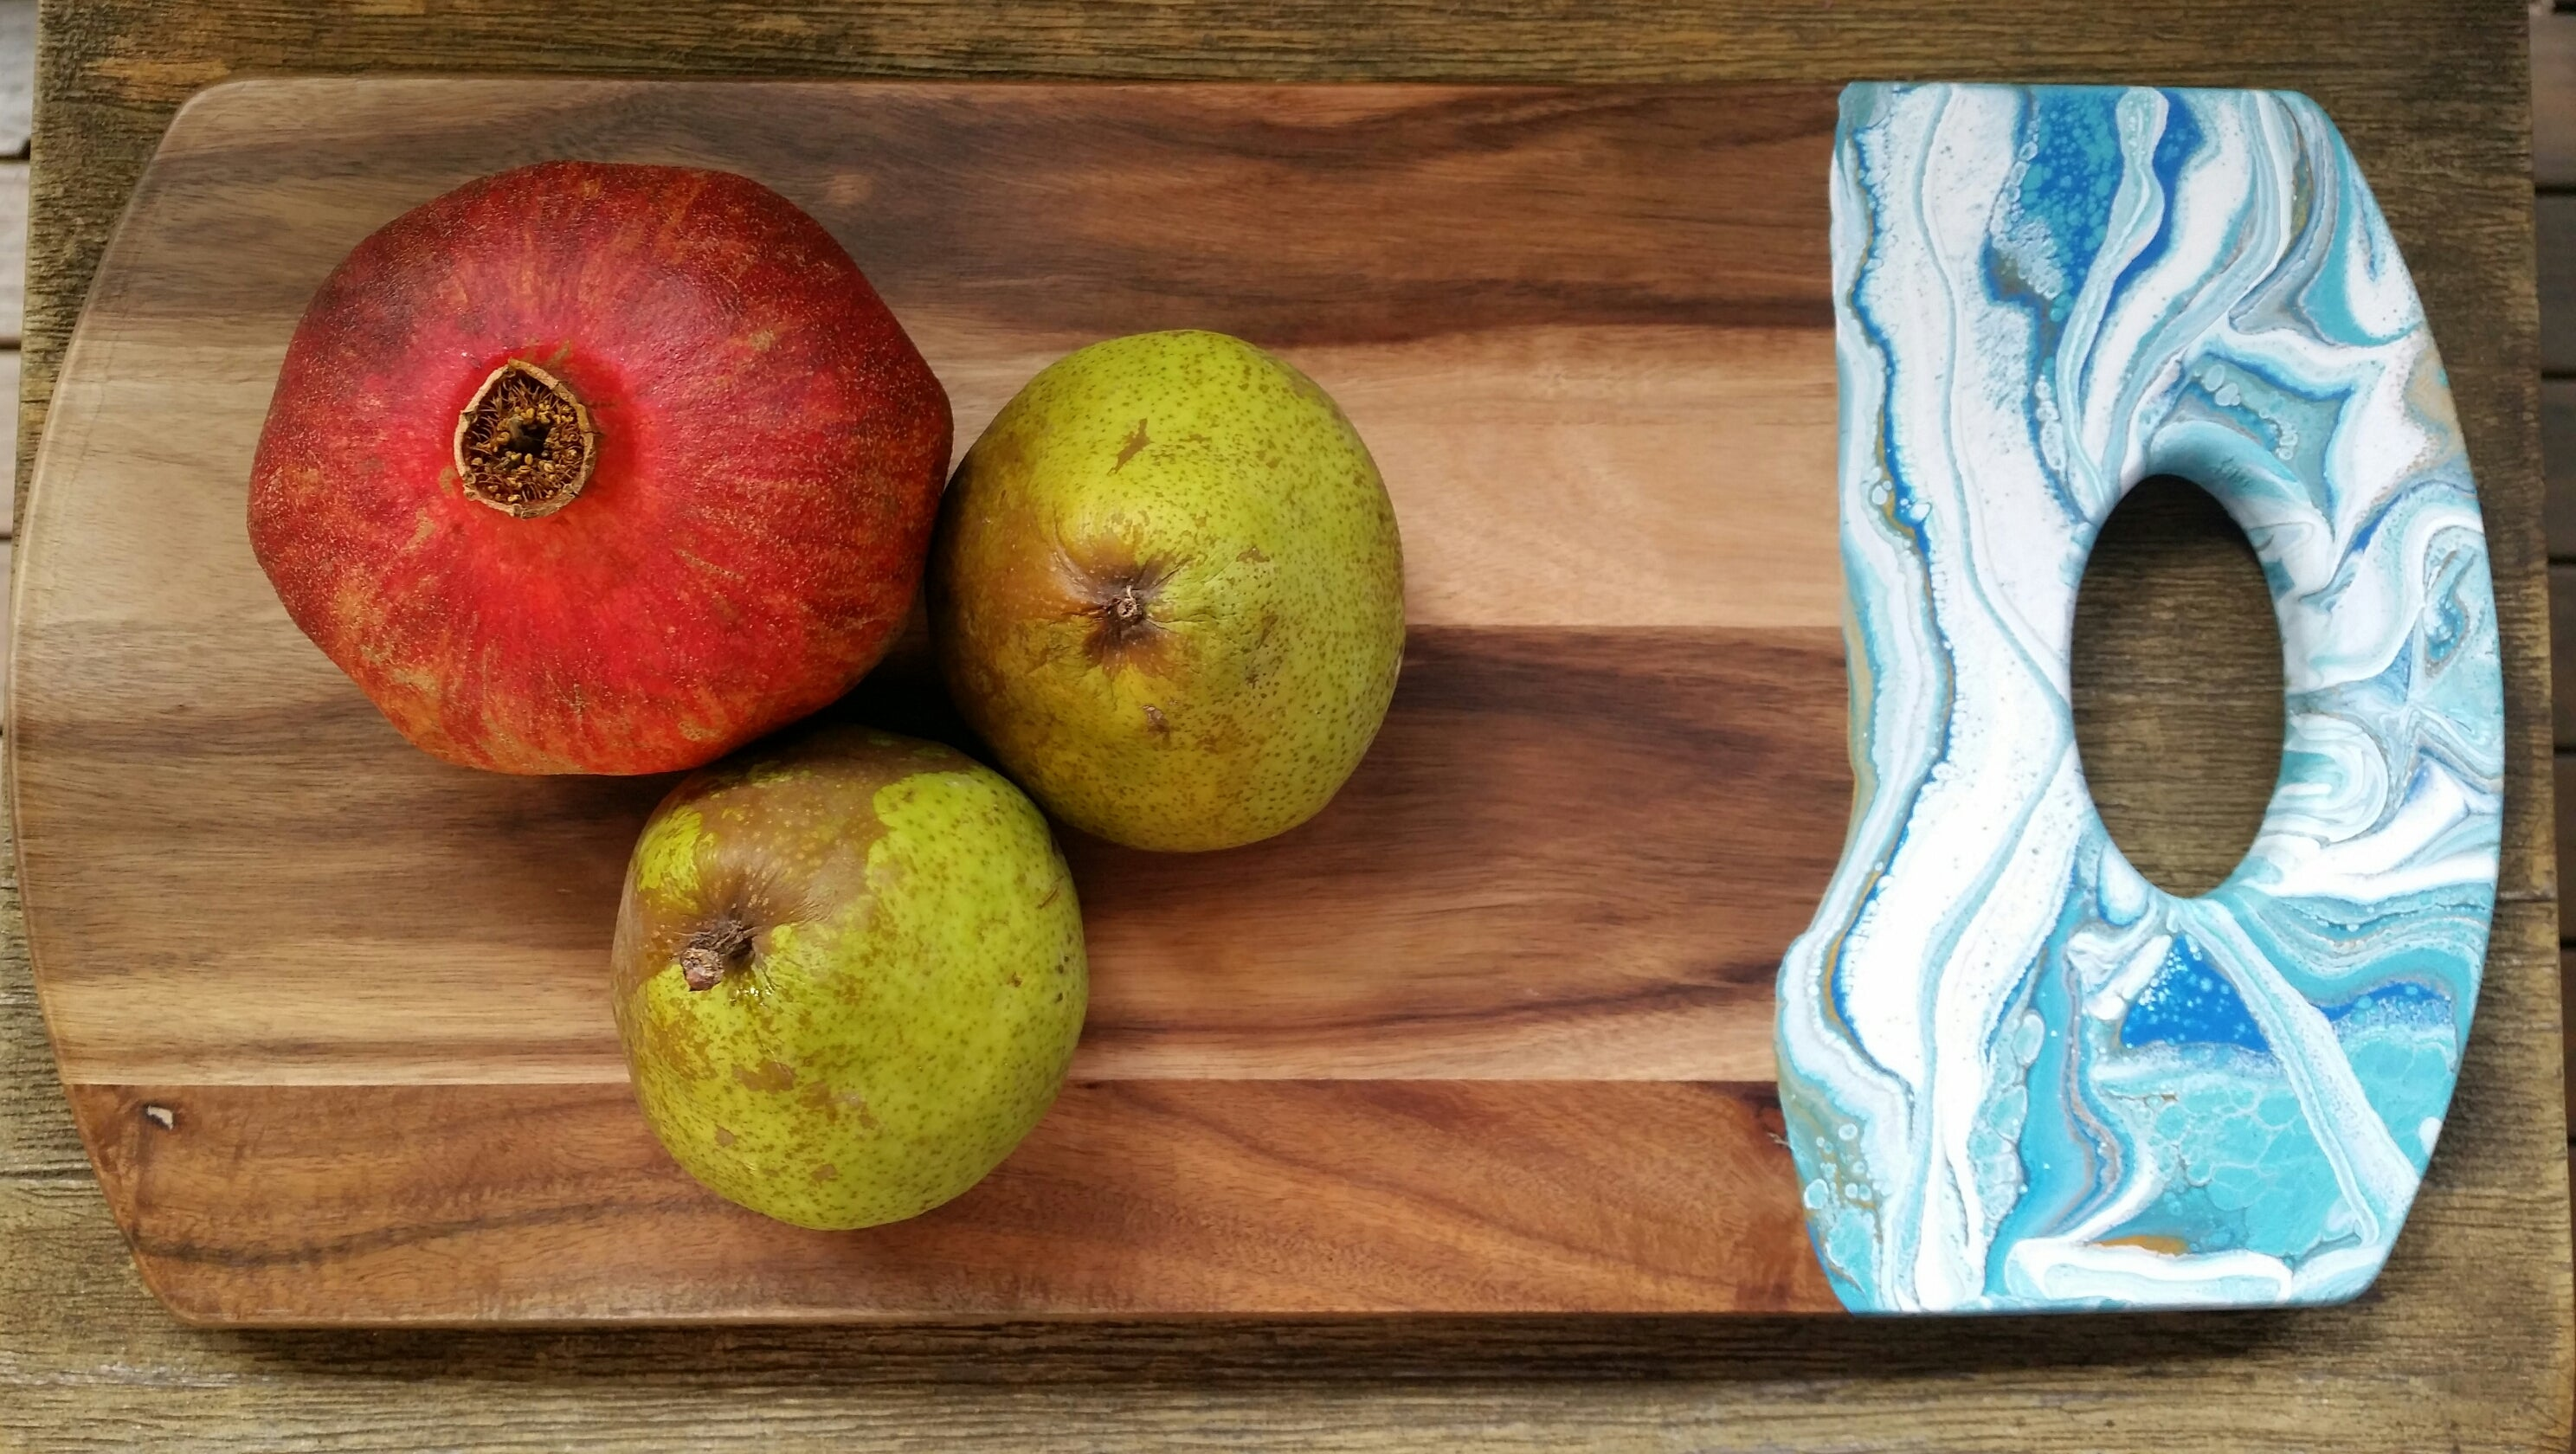 Resin art wooden board with fruit